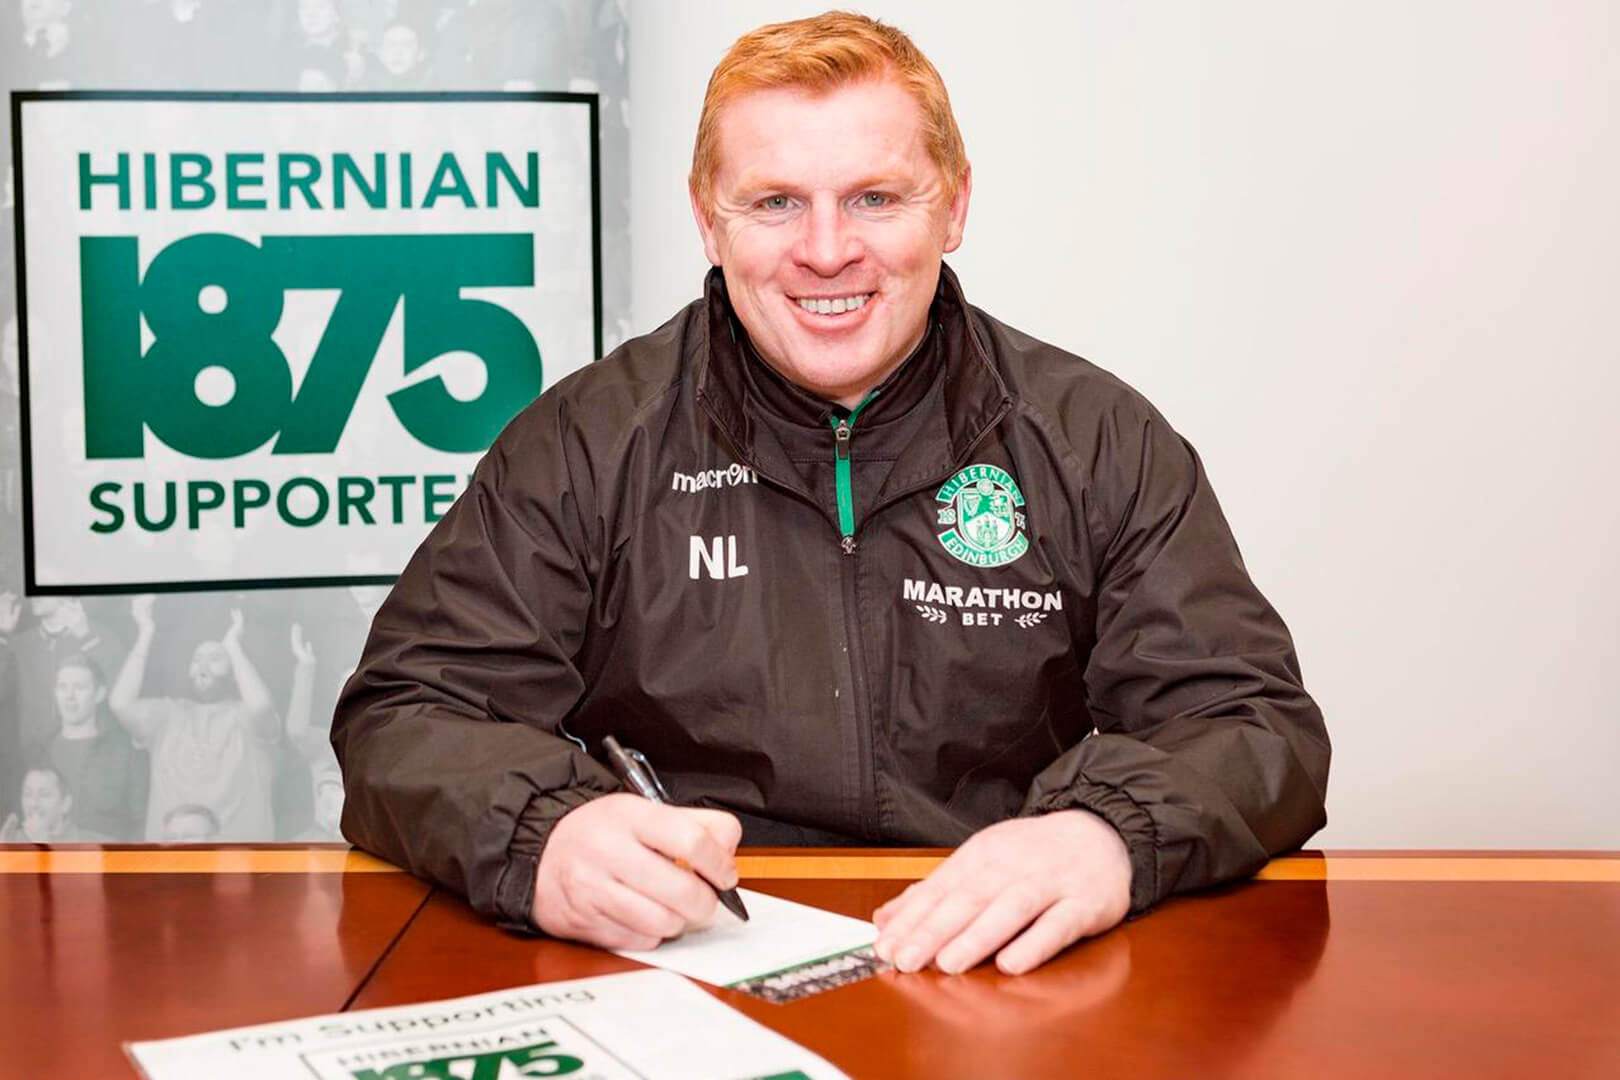 https://hiberniansupporters.co.uk/neil-signs-for-hsl/